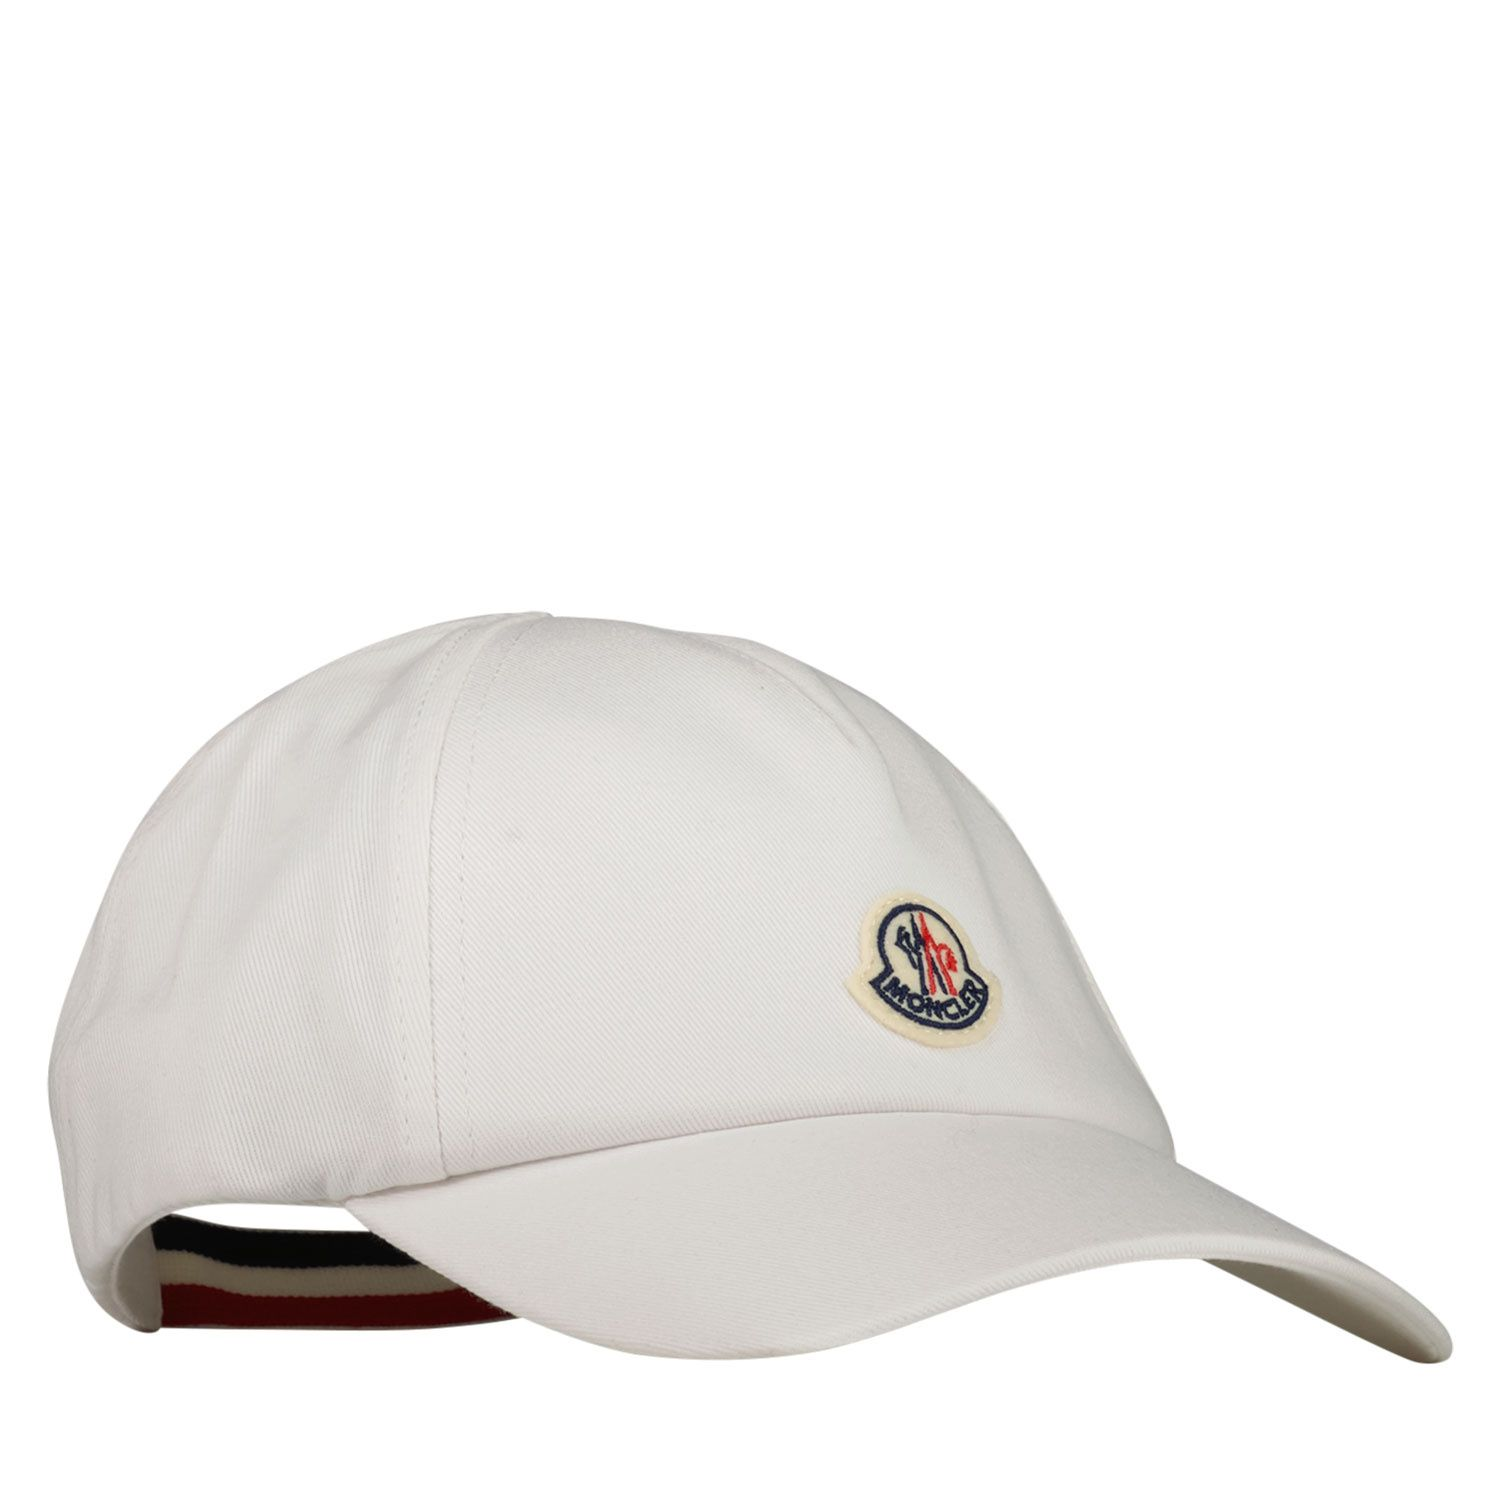 Picture of Moncler 3B70800 baby hat white